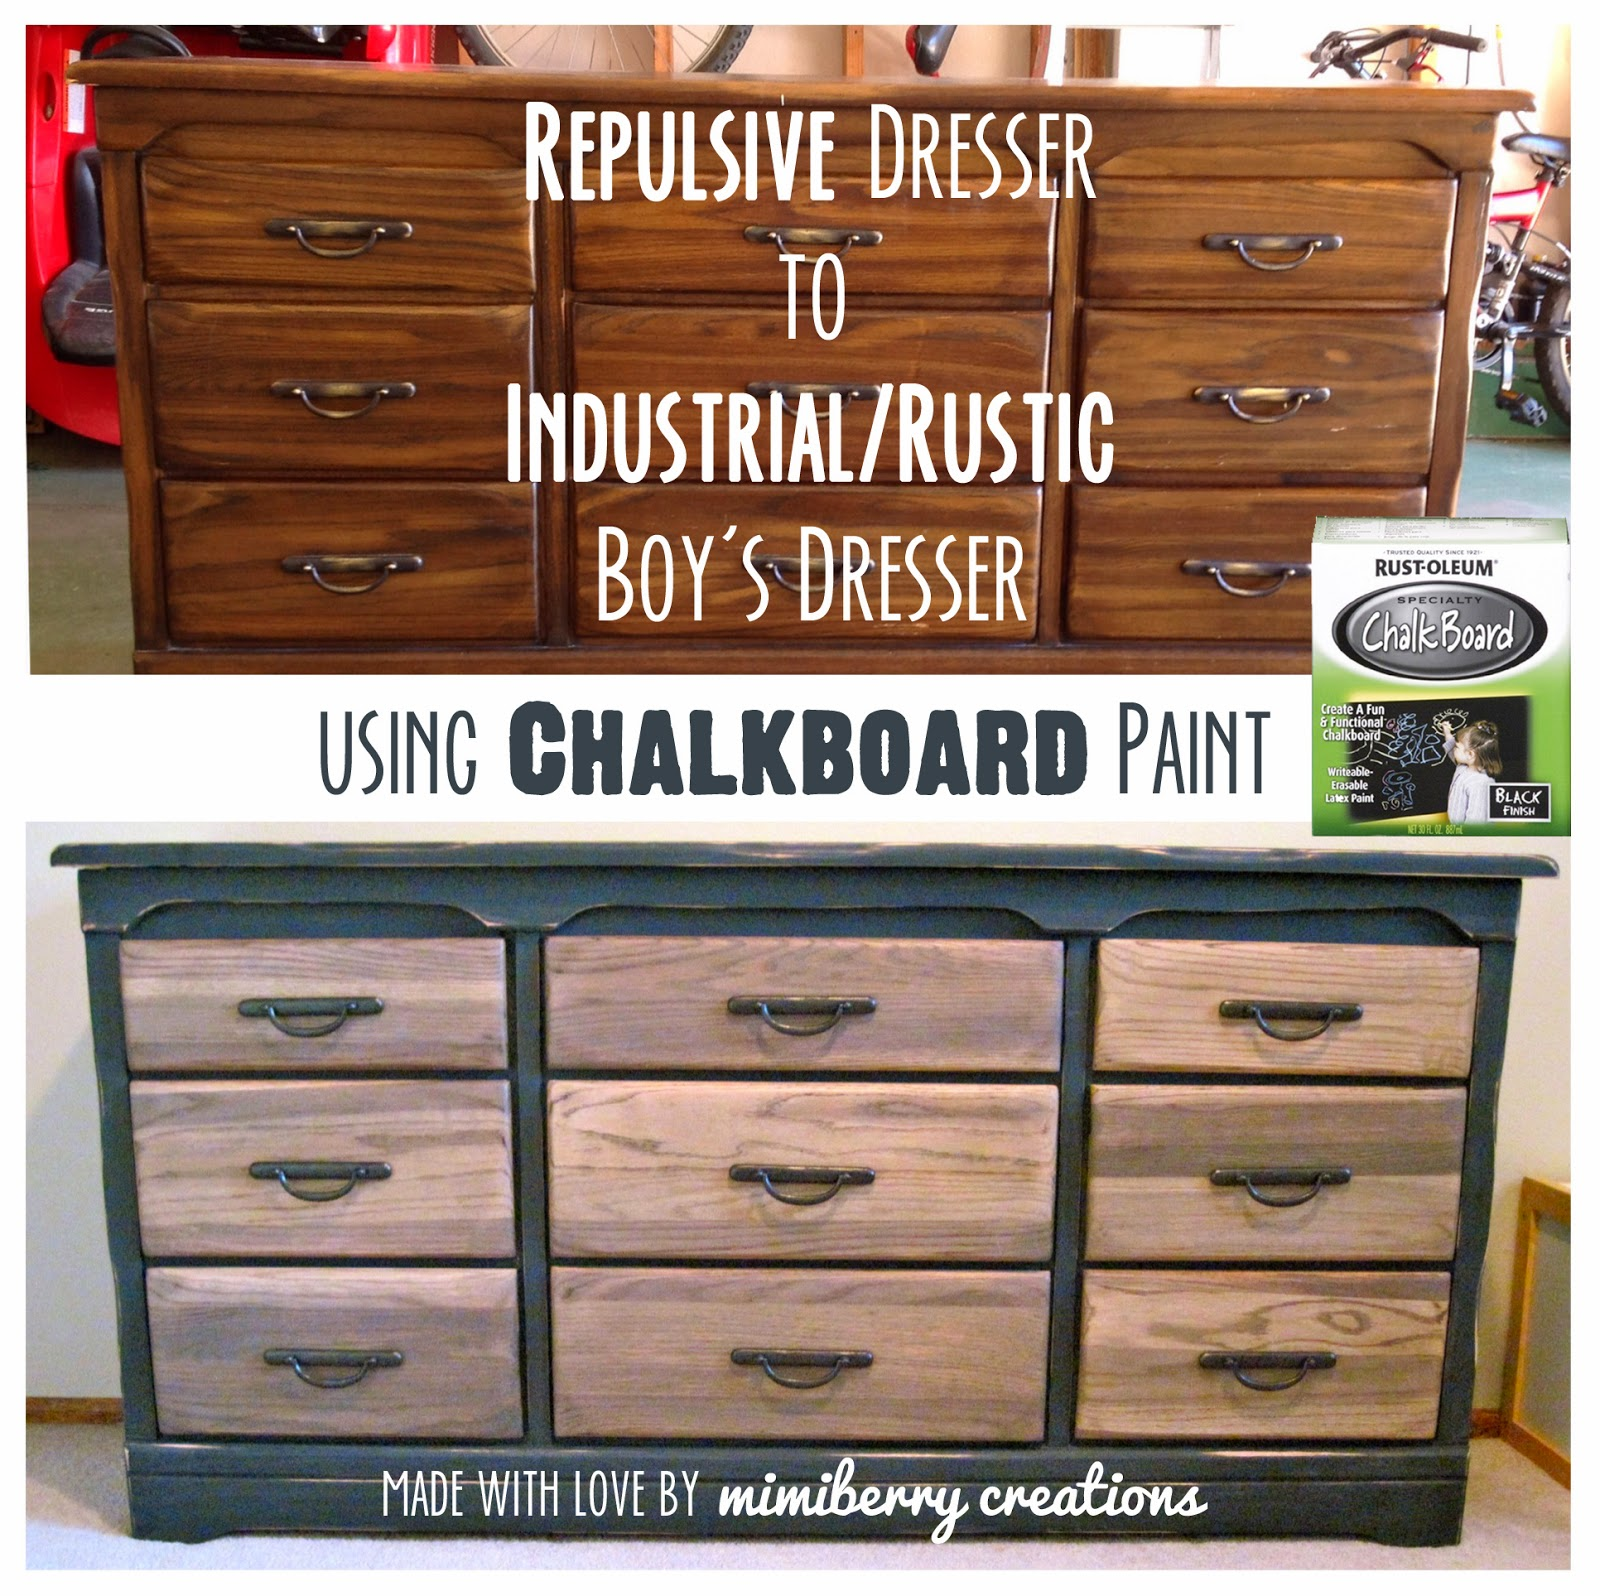 get an industrial/rustic looking dresser (similar to Restoration Hardware) using a small amount of Chalkboard paint. Will make any boys room seem more handsome